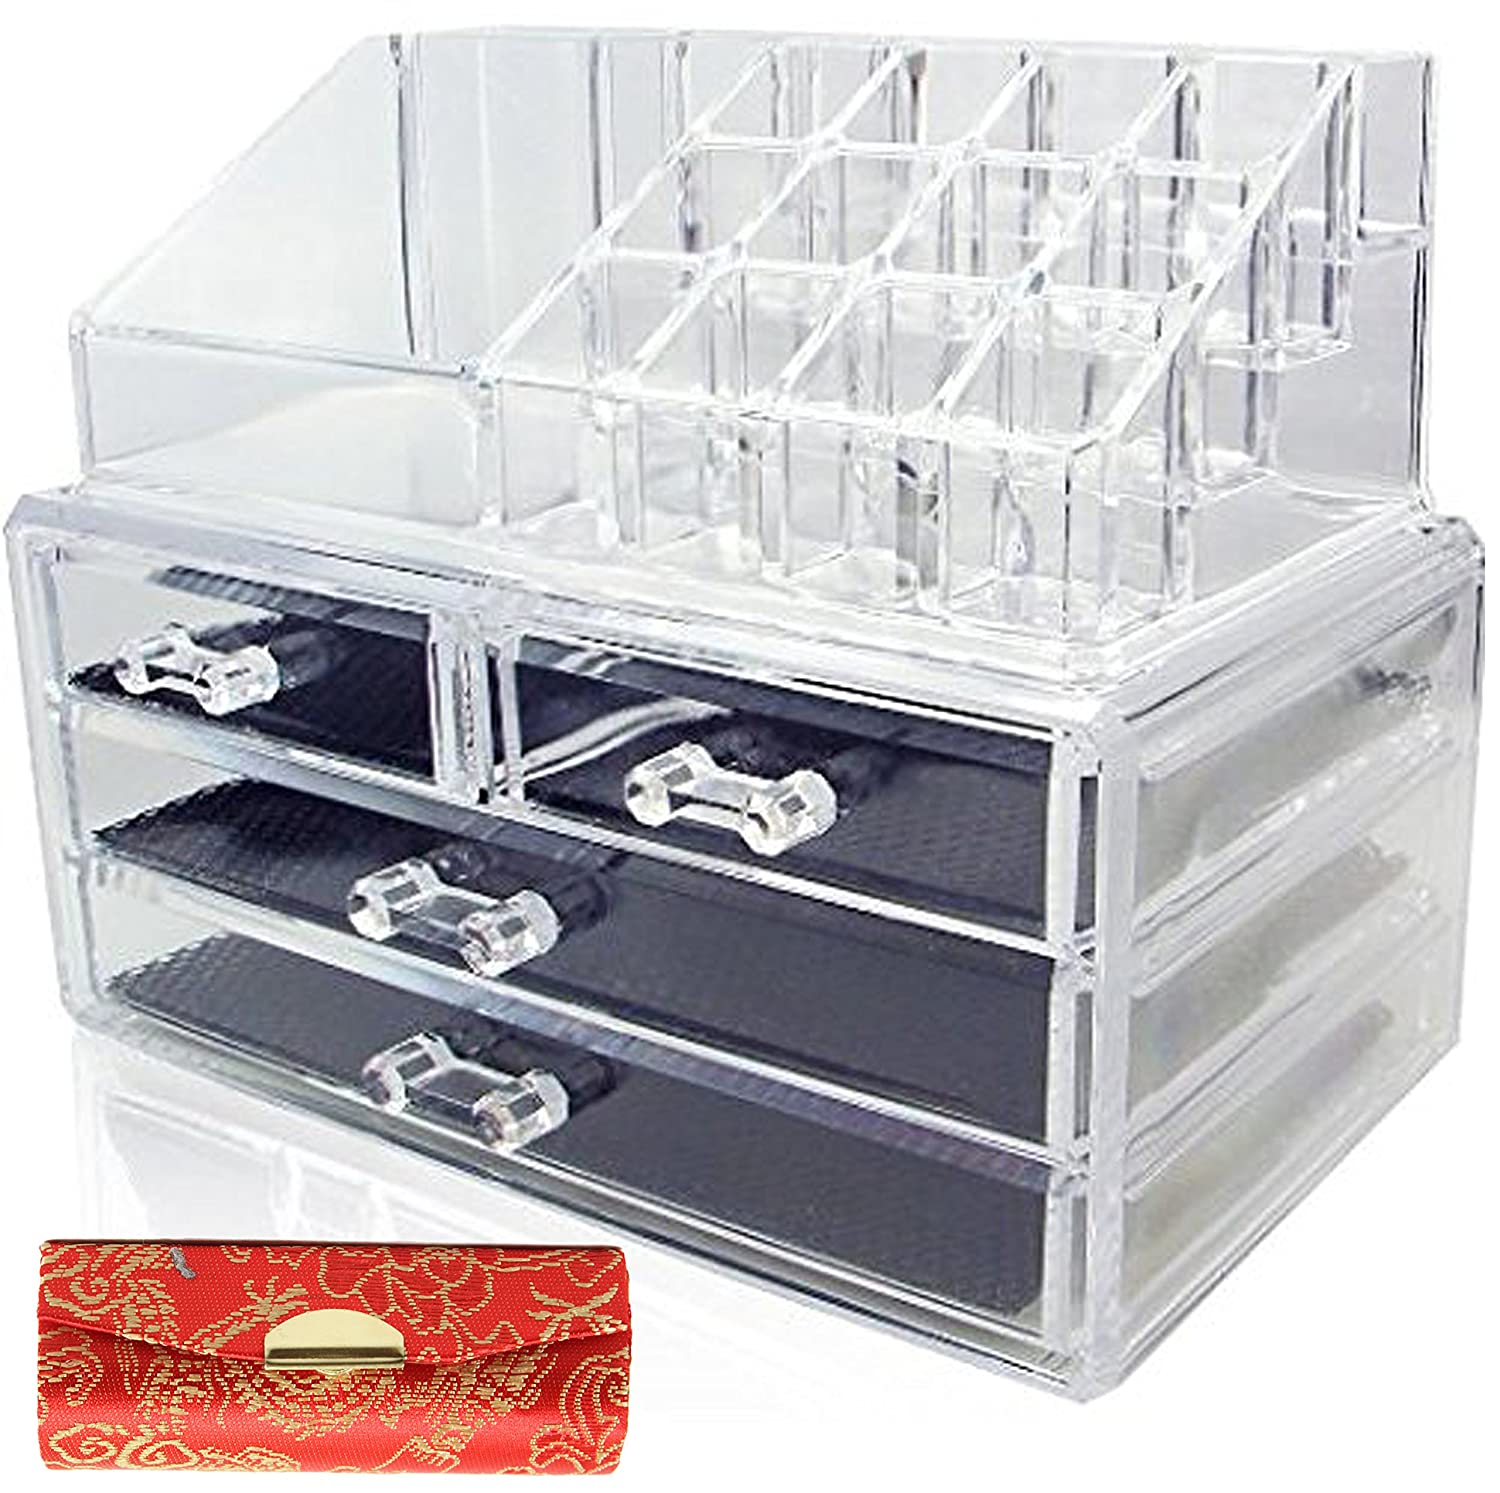 1 FREE lipstick case + Clear Acrylic Cosmetics Makeup Organizer 4 Drawers with 16 Compartments Top Section